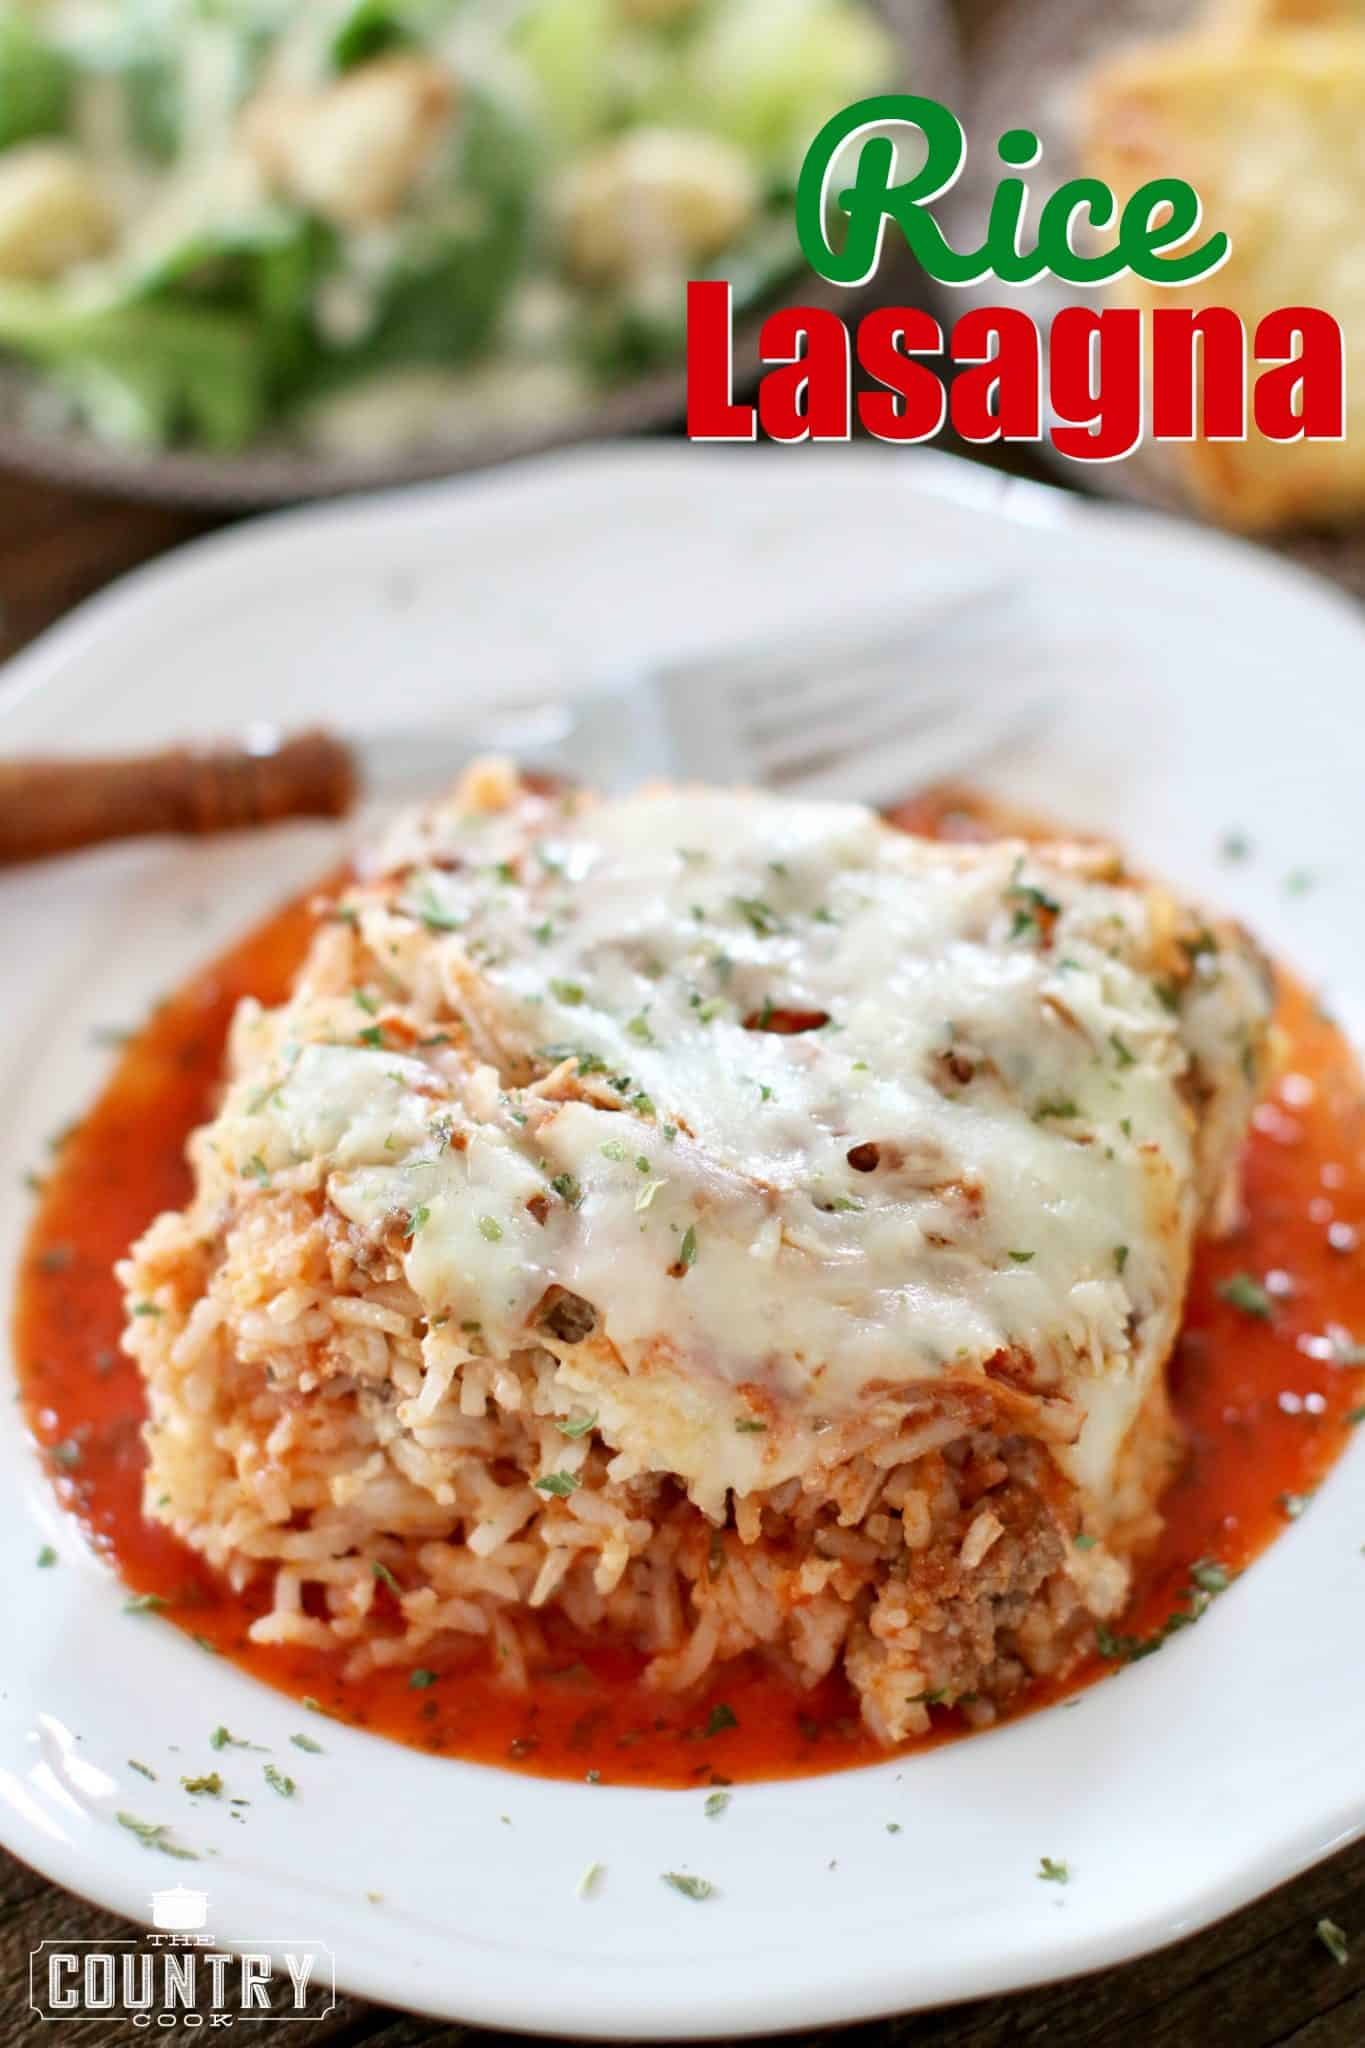 Rice lasagna copyright the country cook rice lasagna recipe from the country cook forumfinder Images